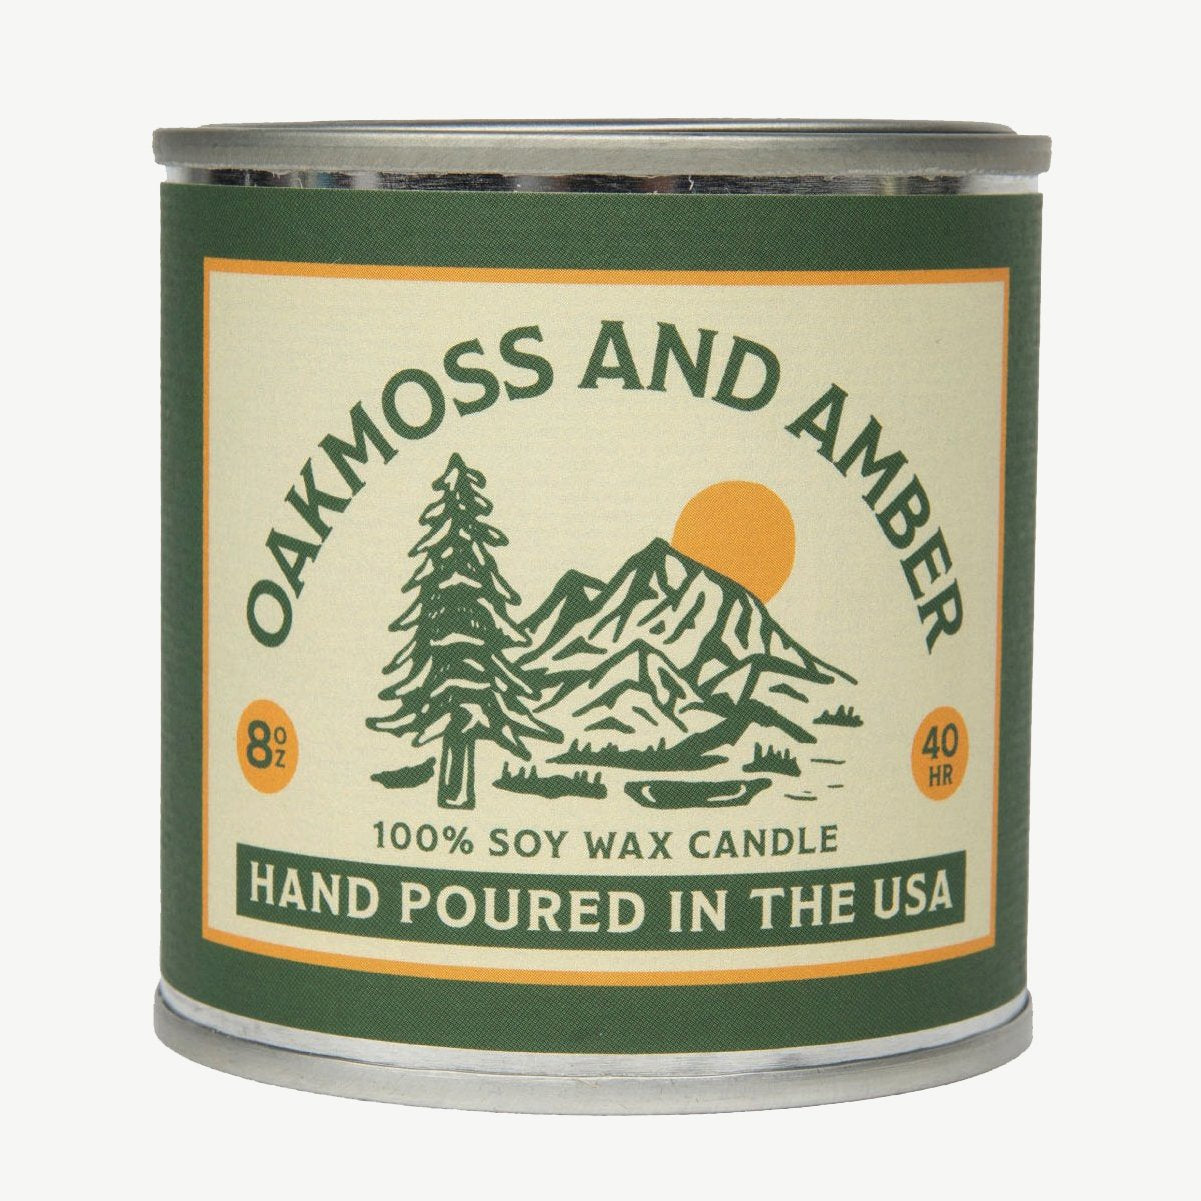 Oakmoss and Amber Candle